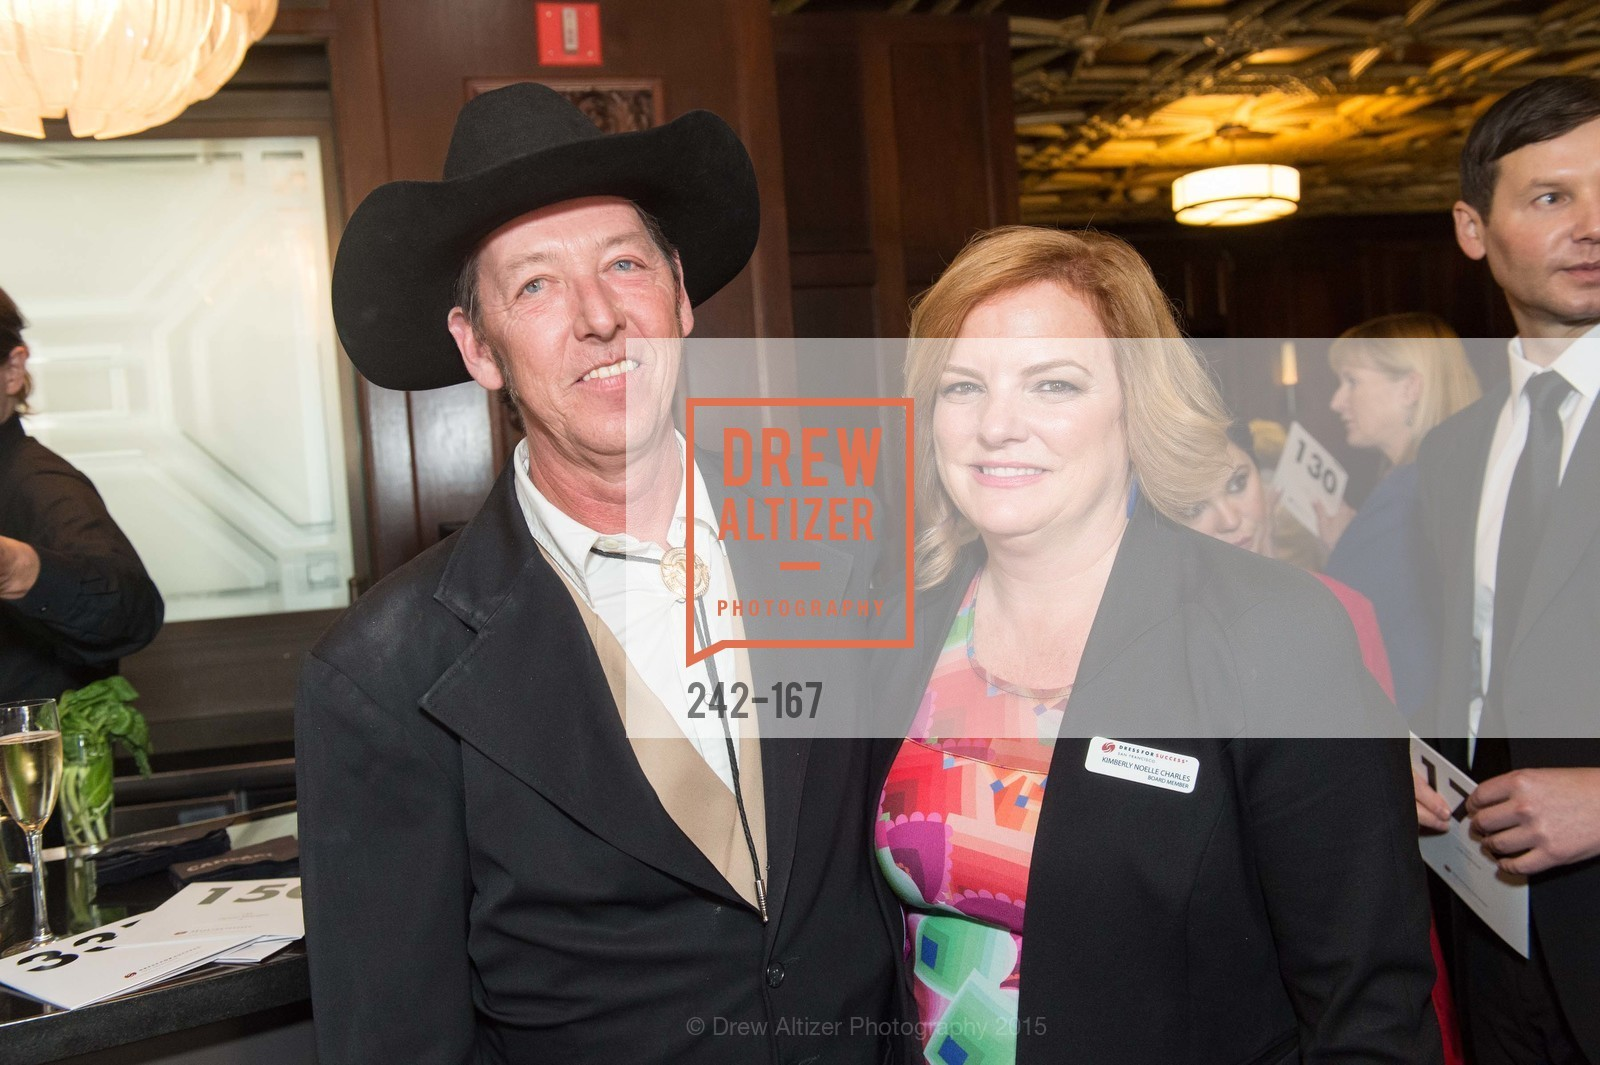 Killian MacGerhaghty, Kimberly Noelle Charleston, Dress for Success San Francisco Hosts the 10th Annual